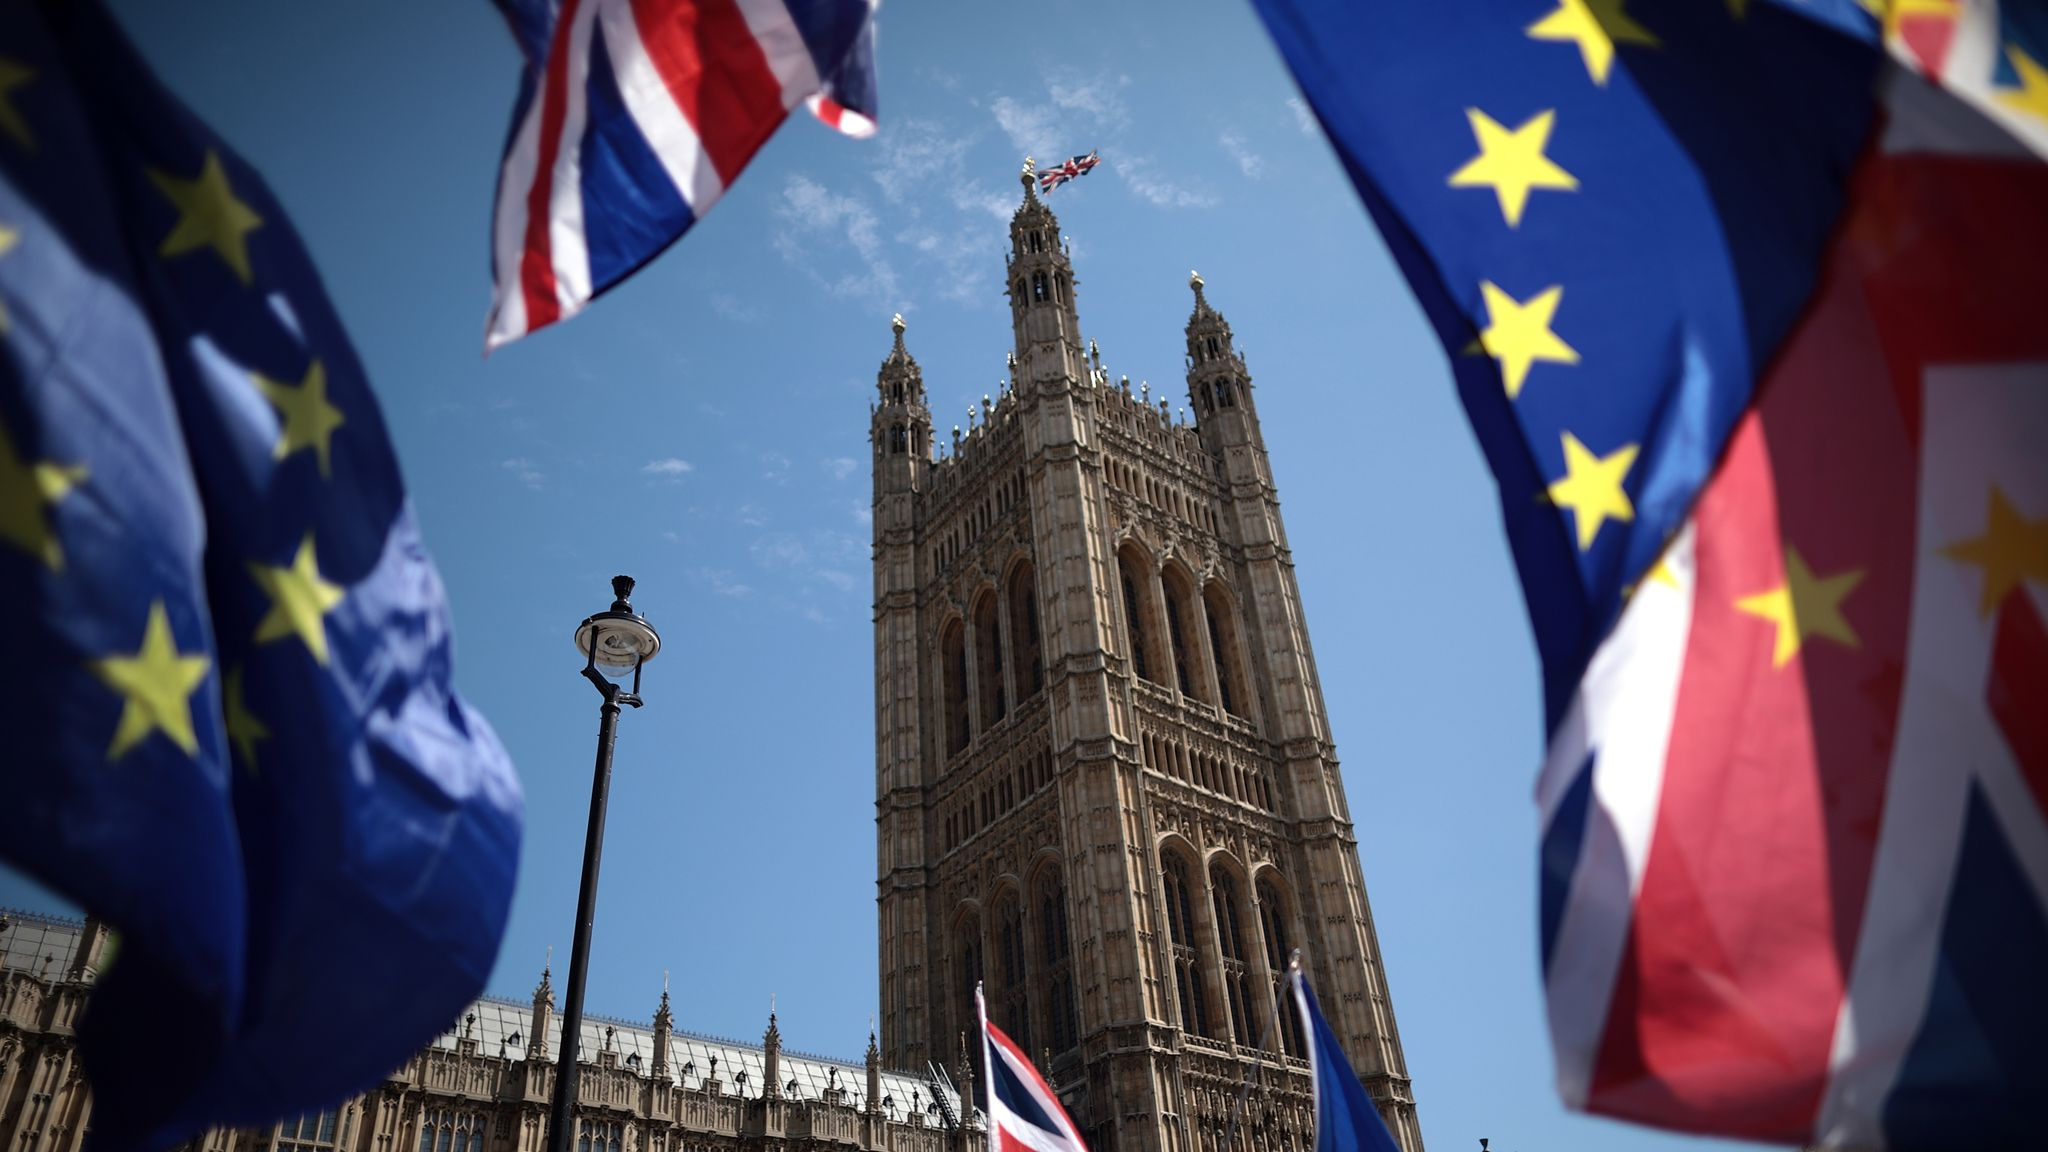 MPs reject Theresa May's Brexit deal again - what happens now?